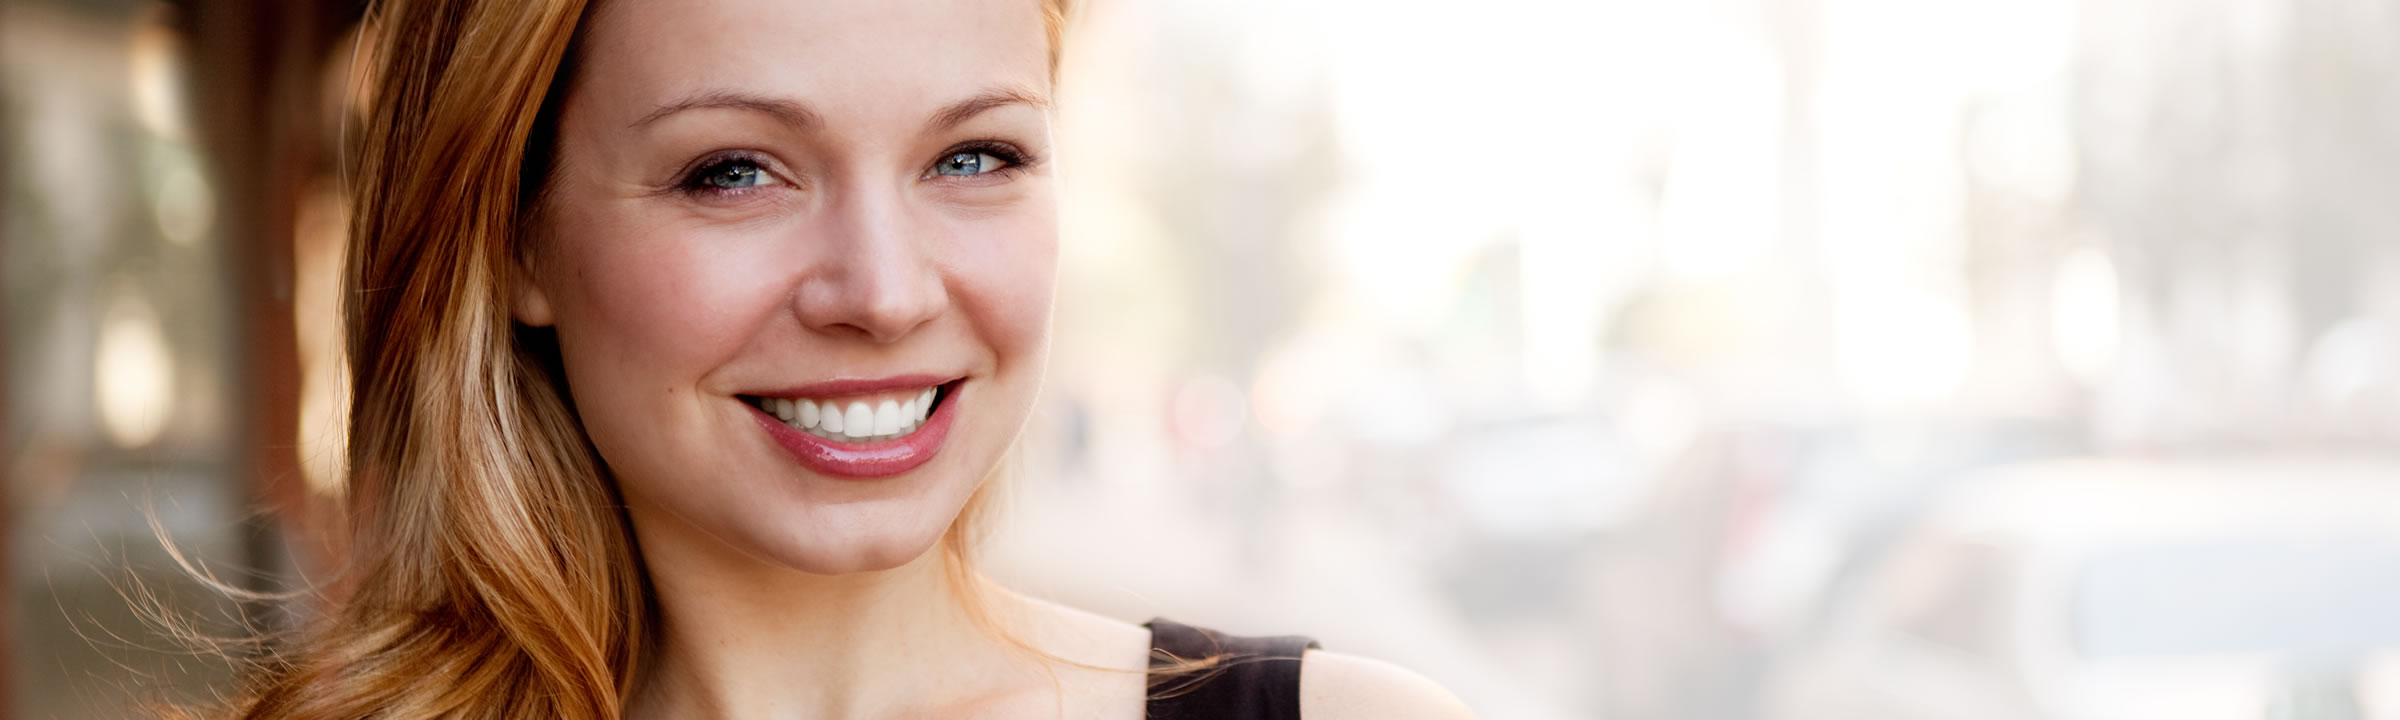 Teeth Whitening Treatment in Whitechapel, London at Aldgate House Dental Practice